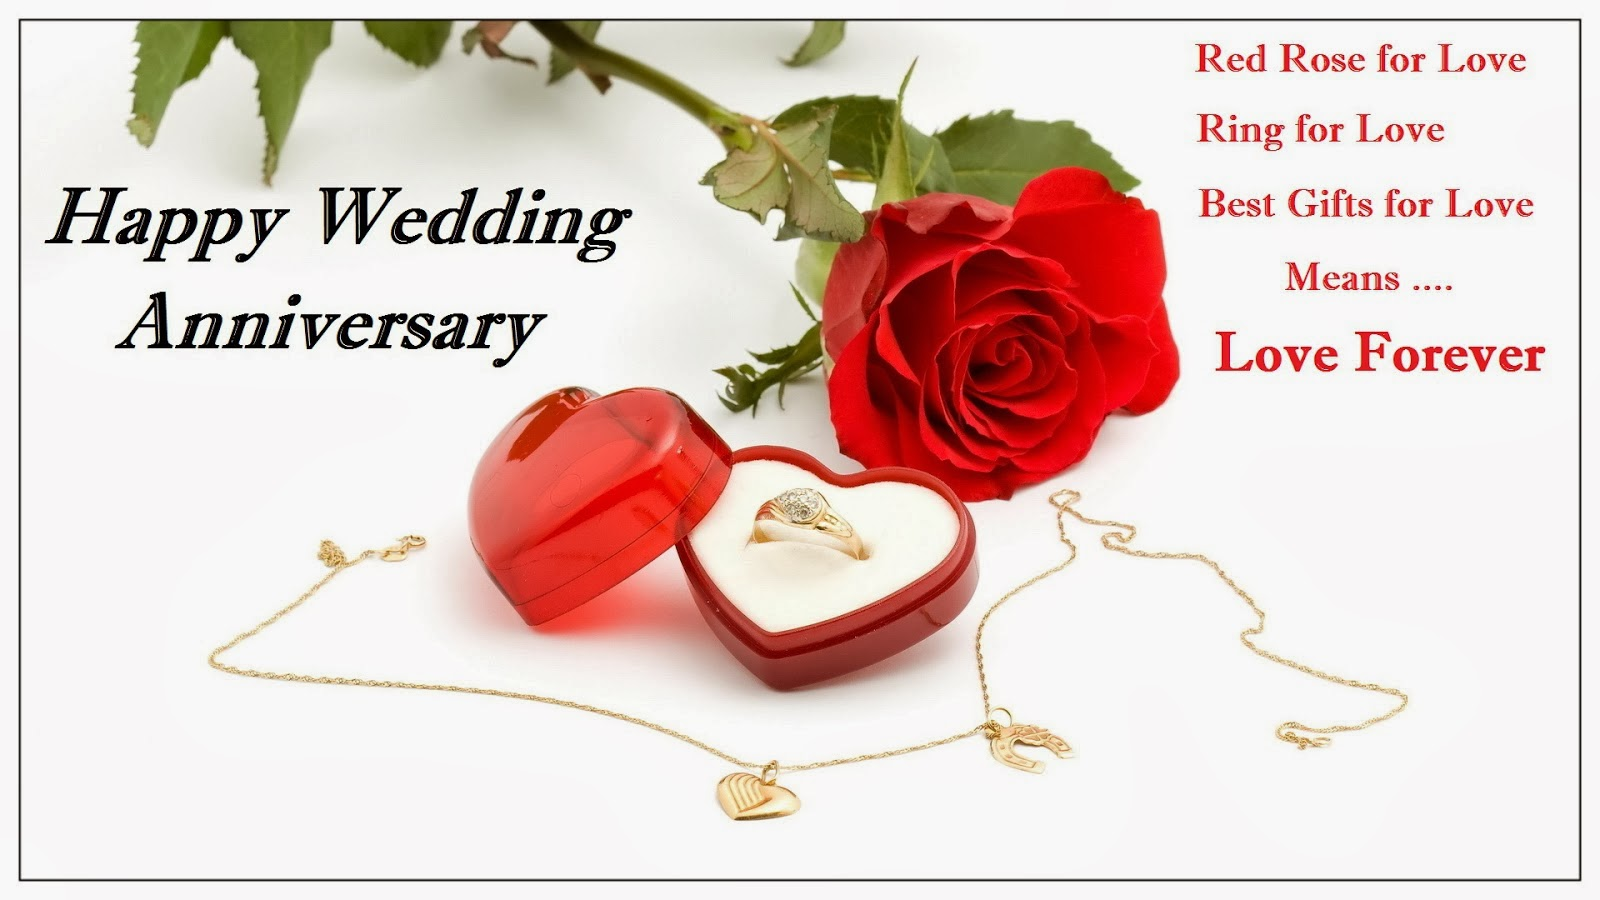 Wedding Anniversary Sayings For Husband With Rose Nicewishes